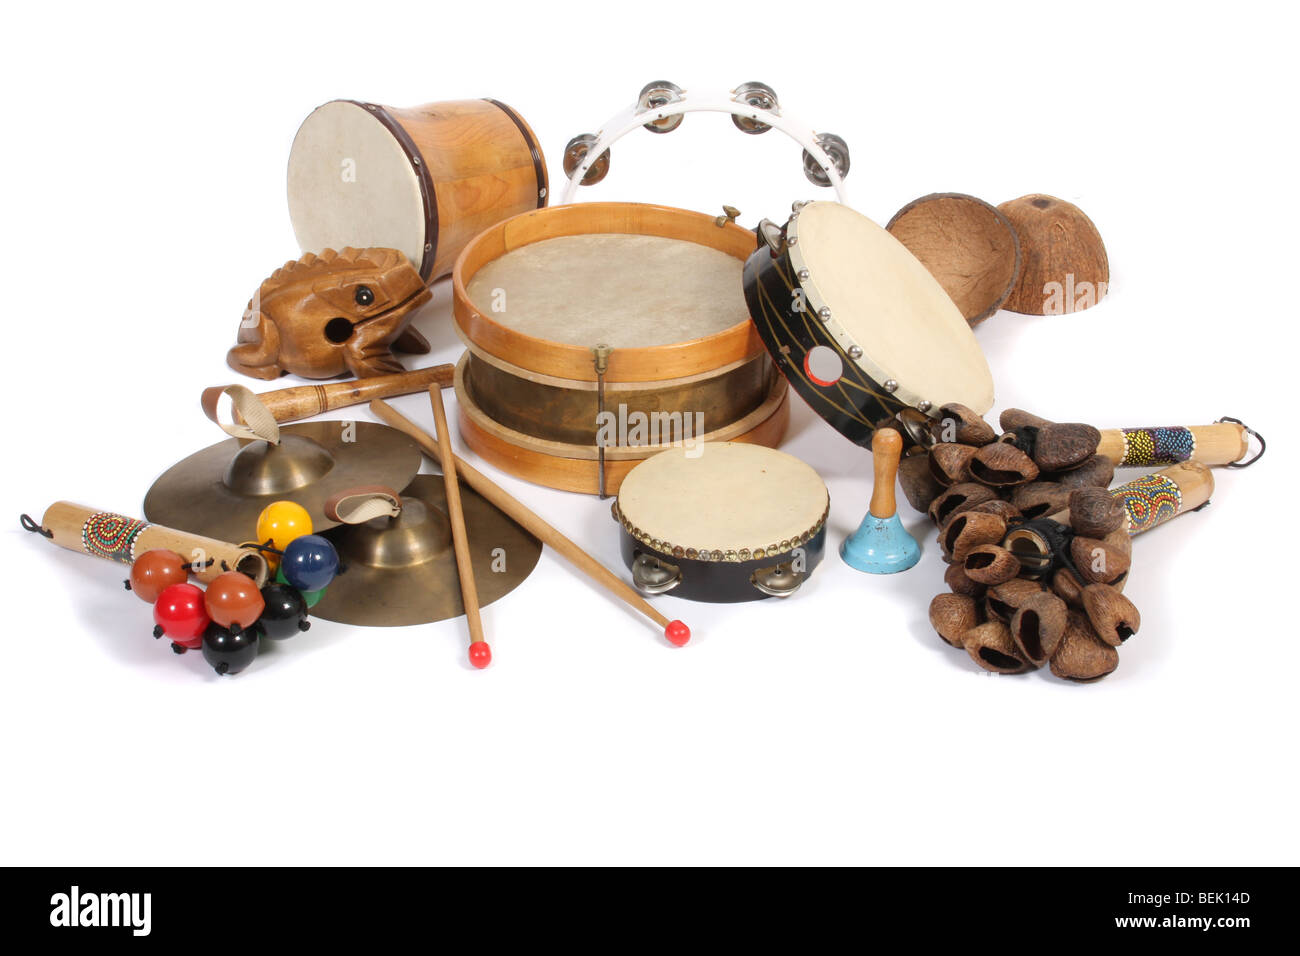 Musical instruments - Stock Image